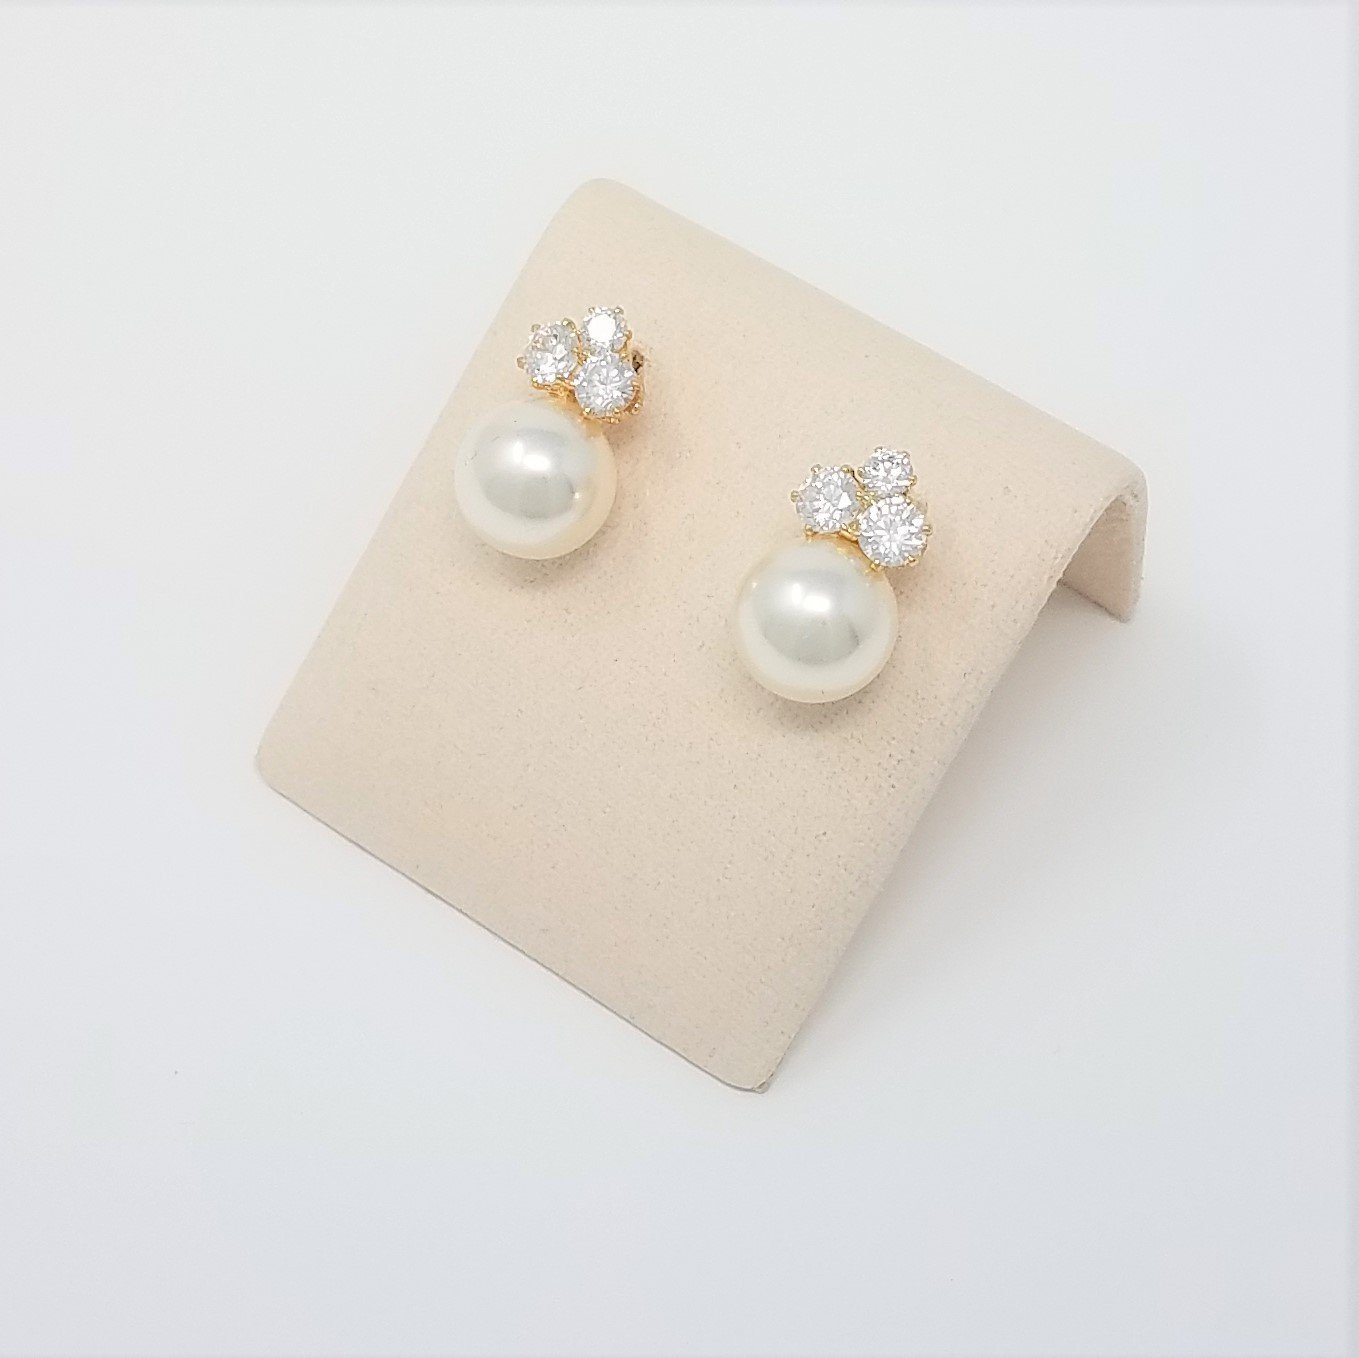 Bridesmaid Gifts - Elegant Pearl & Triple CZ Earrings (8mm, Simulated Pearl) by Bride Dazzle (Image #5)